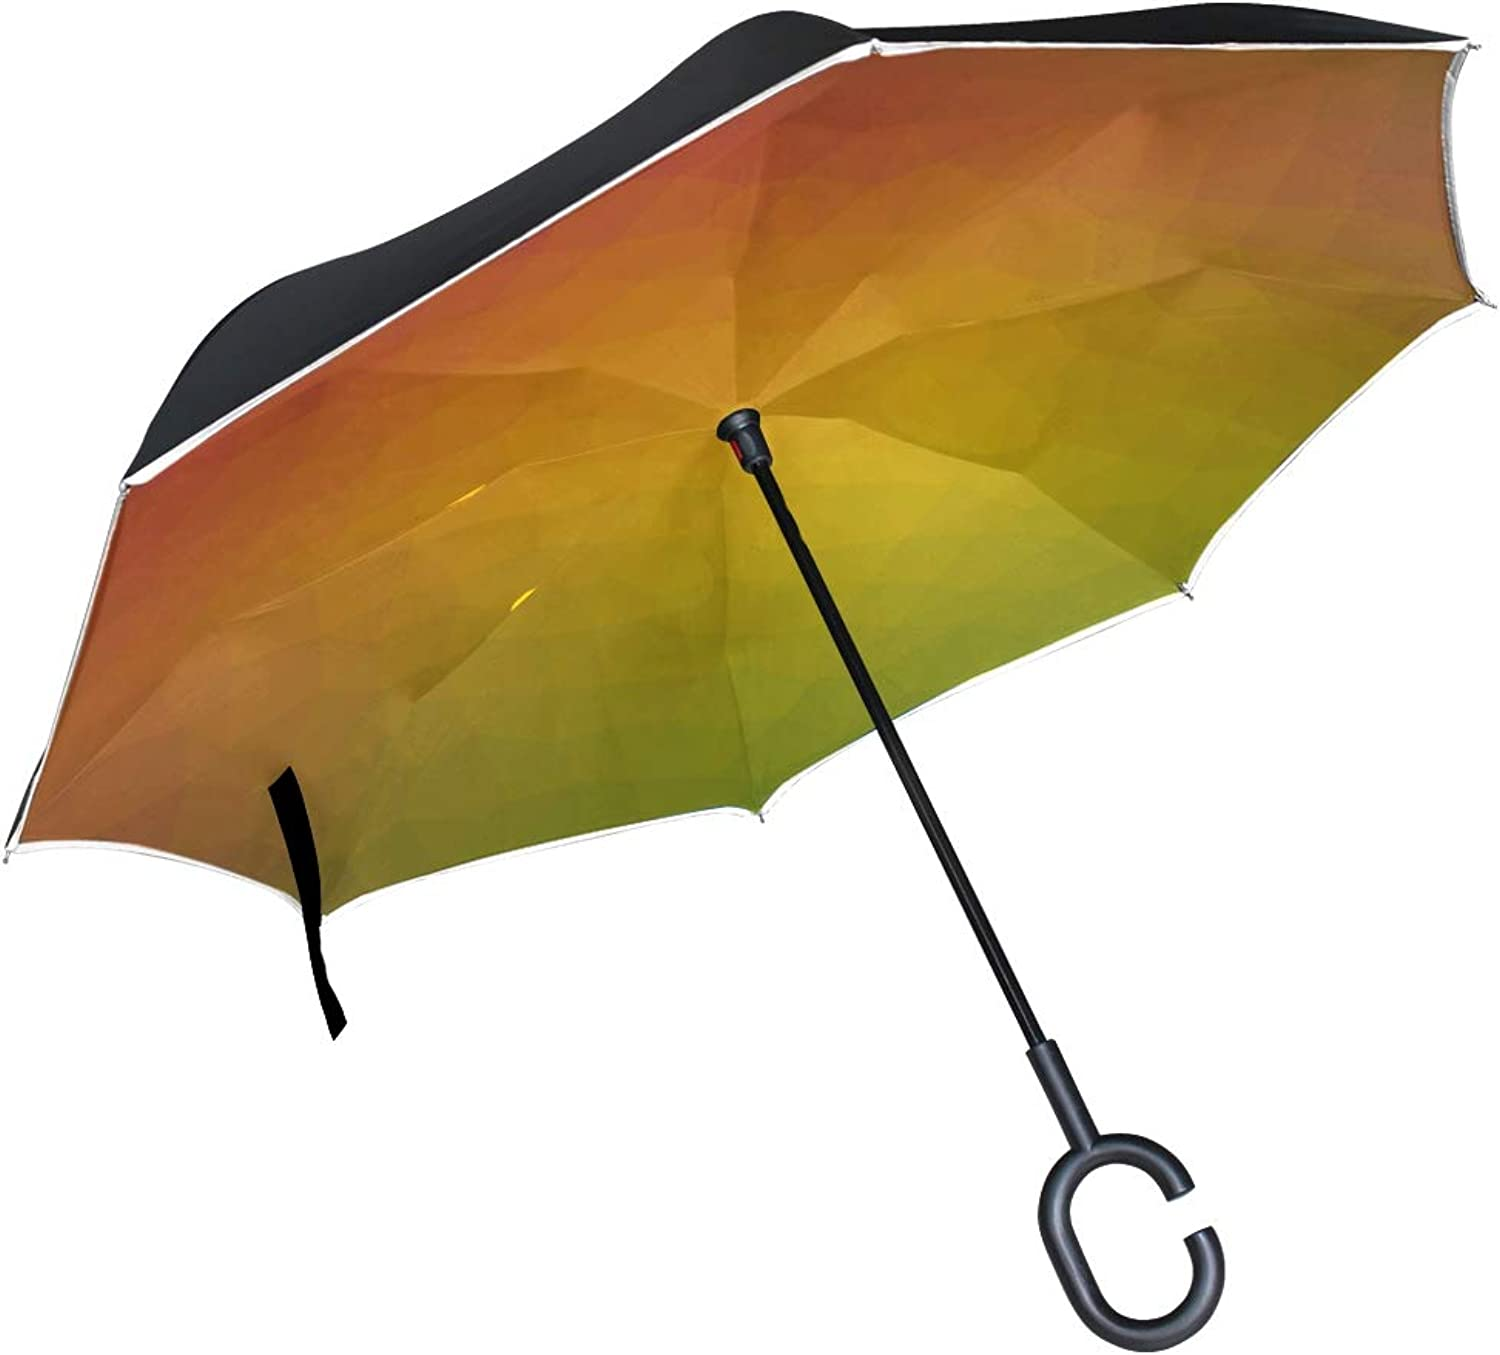 Double Layer Ingreened color Triangle Geometric Textured Shape Abstract 2174038 Umbrellas Reverse Folding Umbrella Windproof Uv Predection Big Straight Umbrella For Car Rain Outdoor With Cshaped Handle